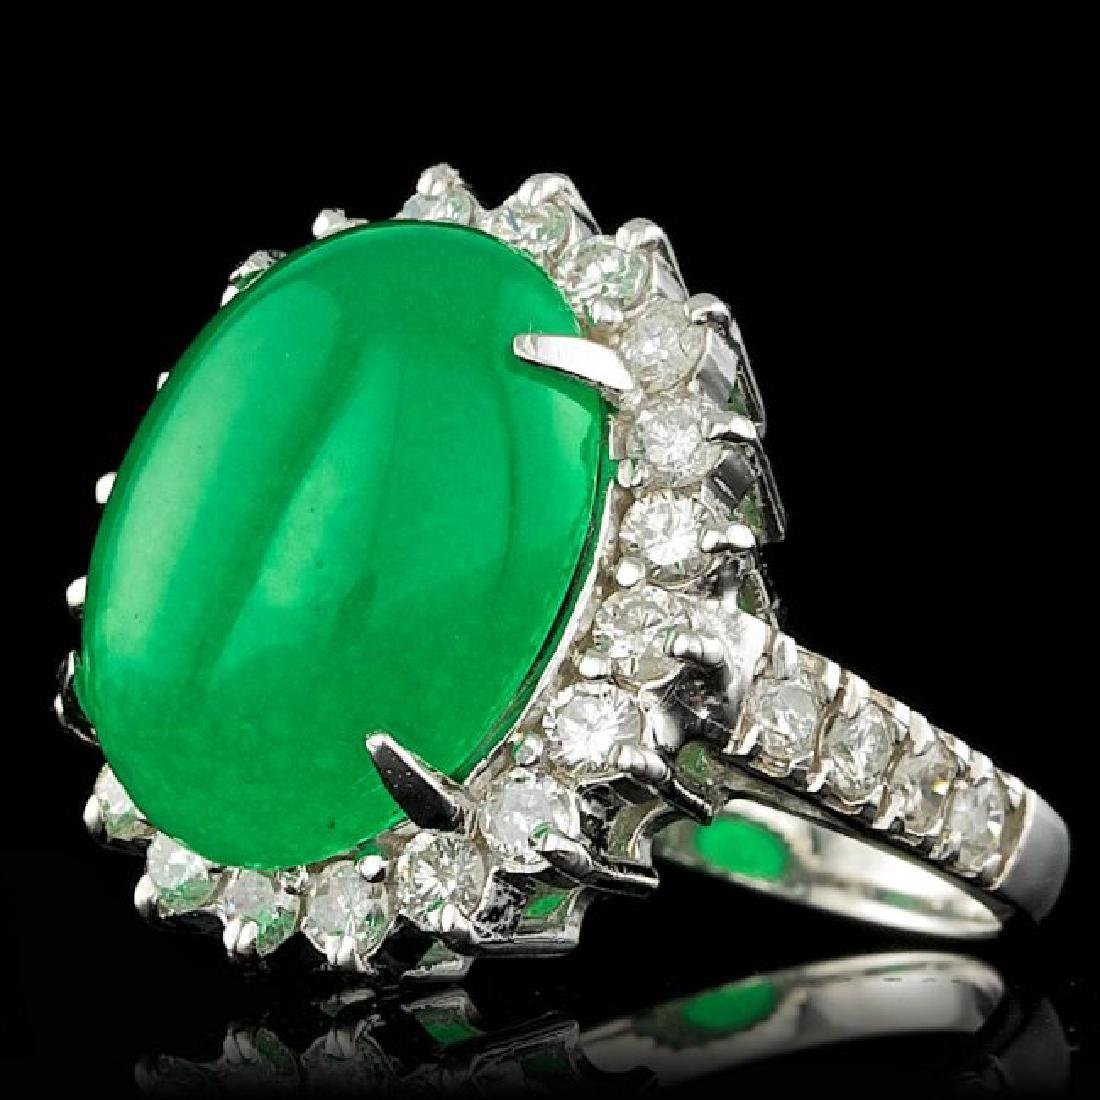 14k White Gold 9.50ct Jade 1.40ct Diamond Ring - 2